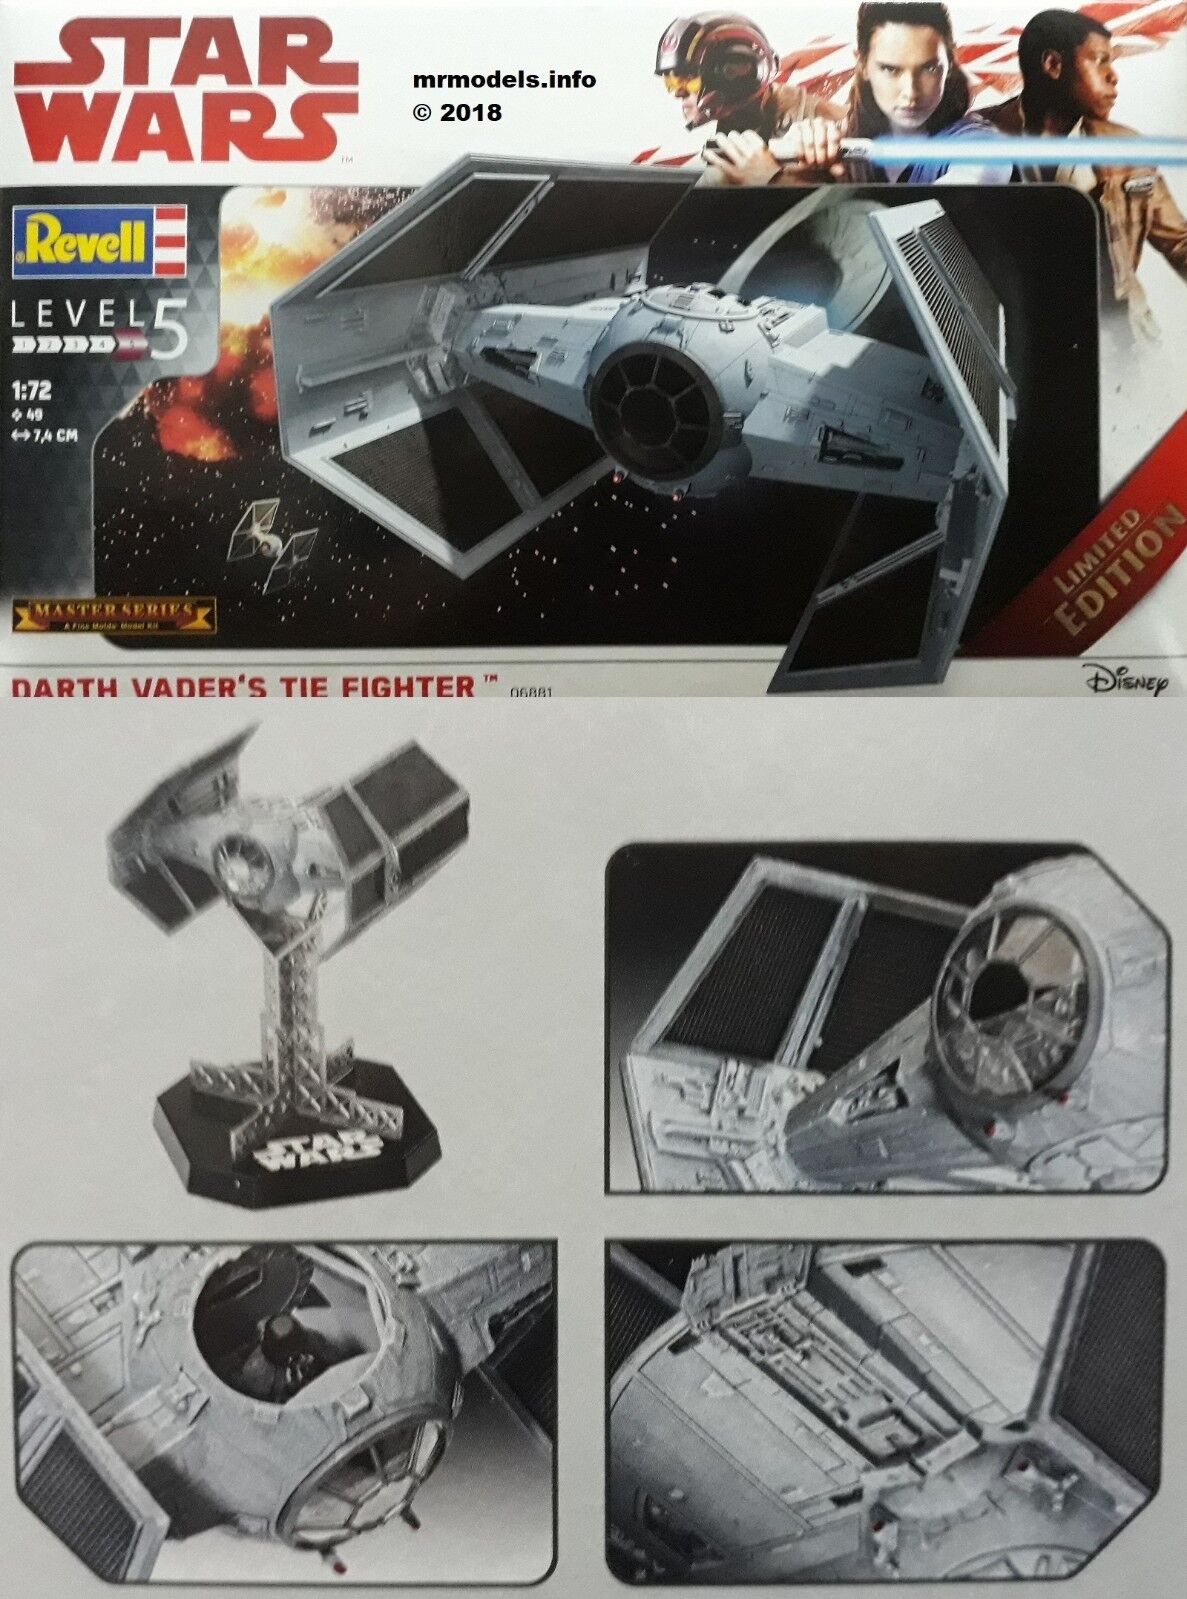 Revell 1 72 Star Wars Darth Vader's Tie Fighter New Fine Molds Model Kit 06881